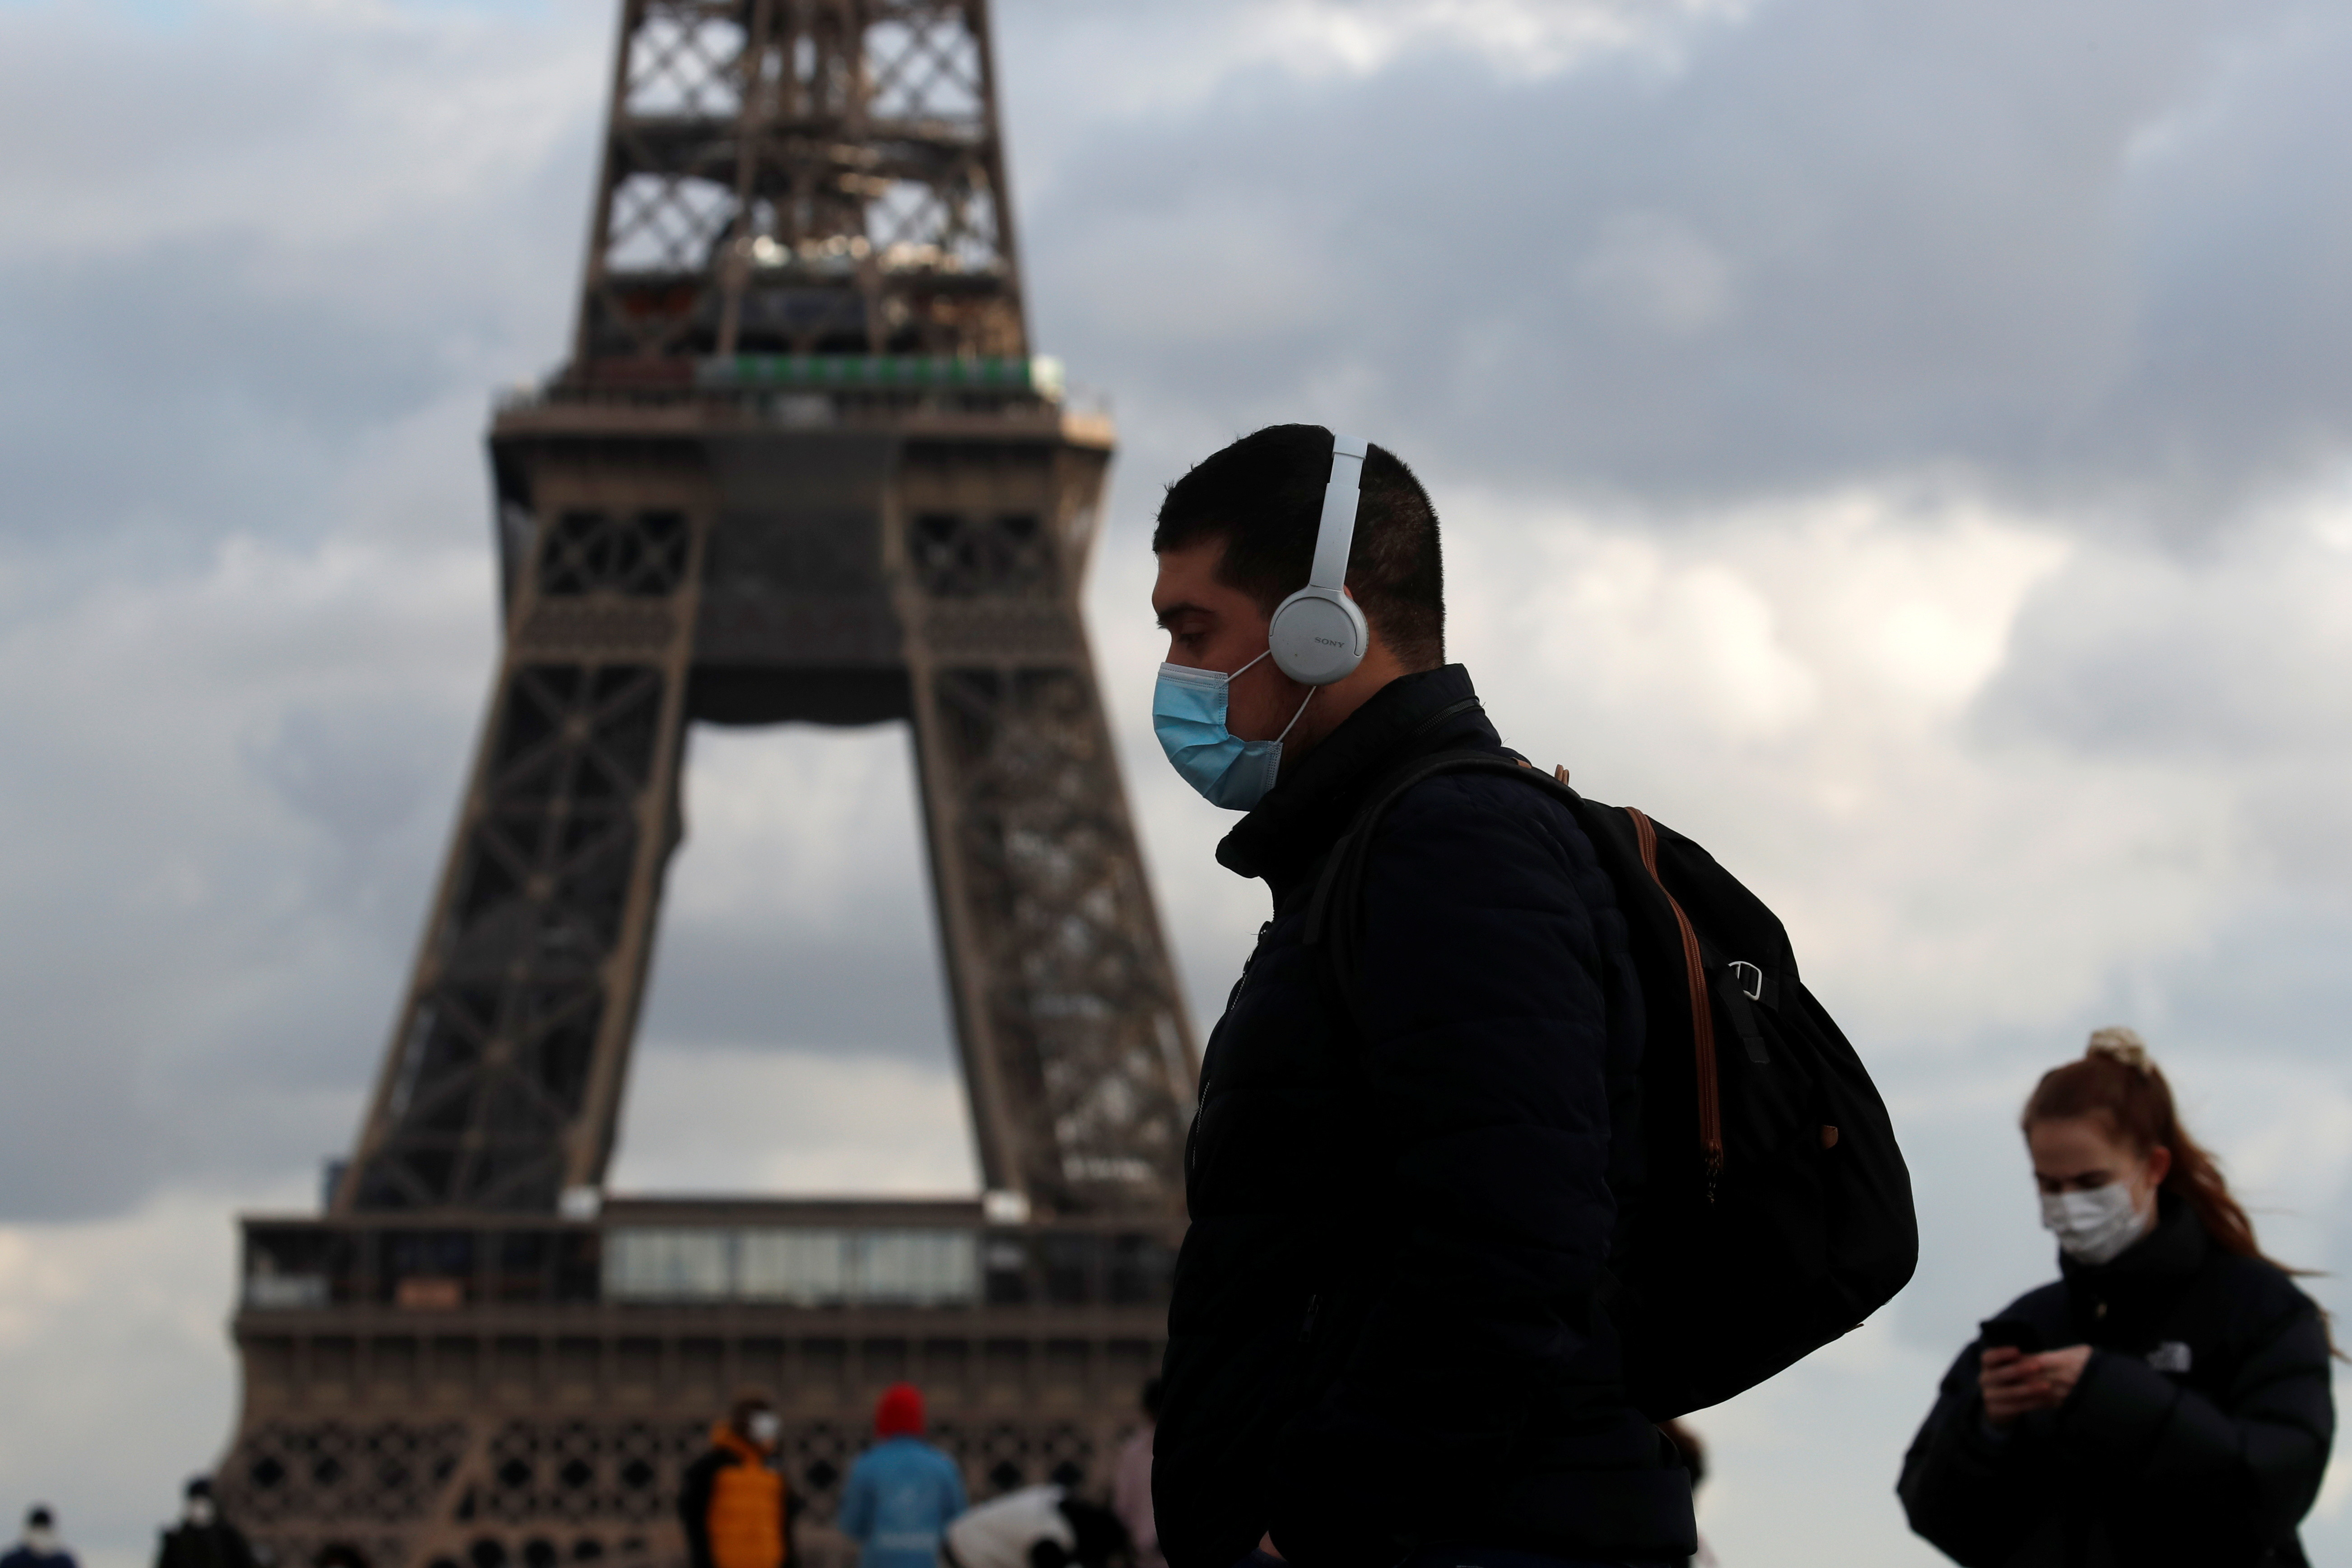 People, wearing protective face masks, walk at Trocadero square near the Eiffel Tower in Paris amid the coronavirus disease (COVID-19) outbreak in France, January 22, 2021. REUTERS/Gonzalo Fuentes - RC24DL9LV1PU